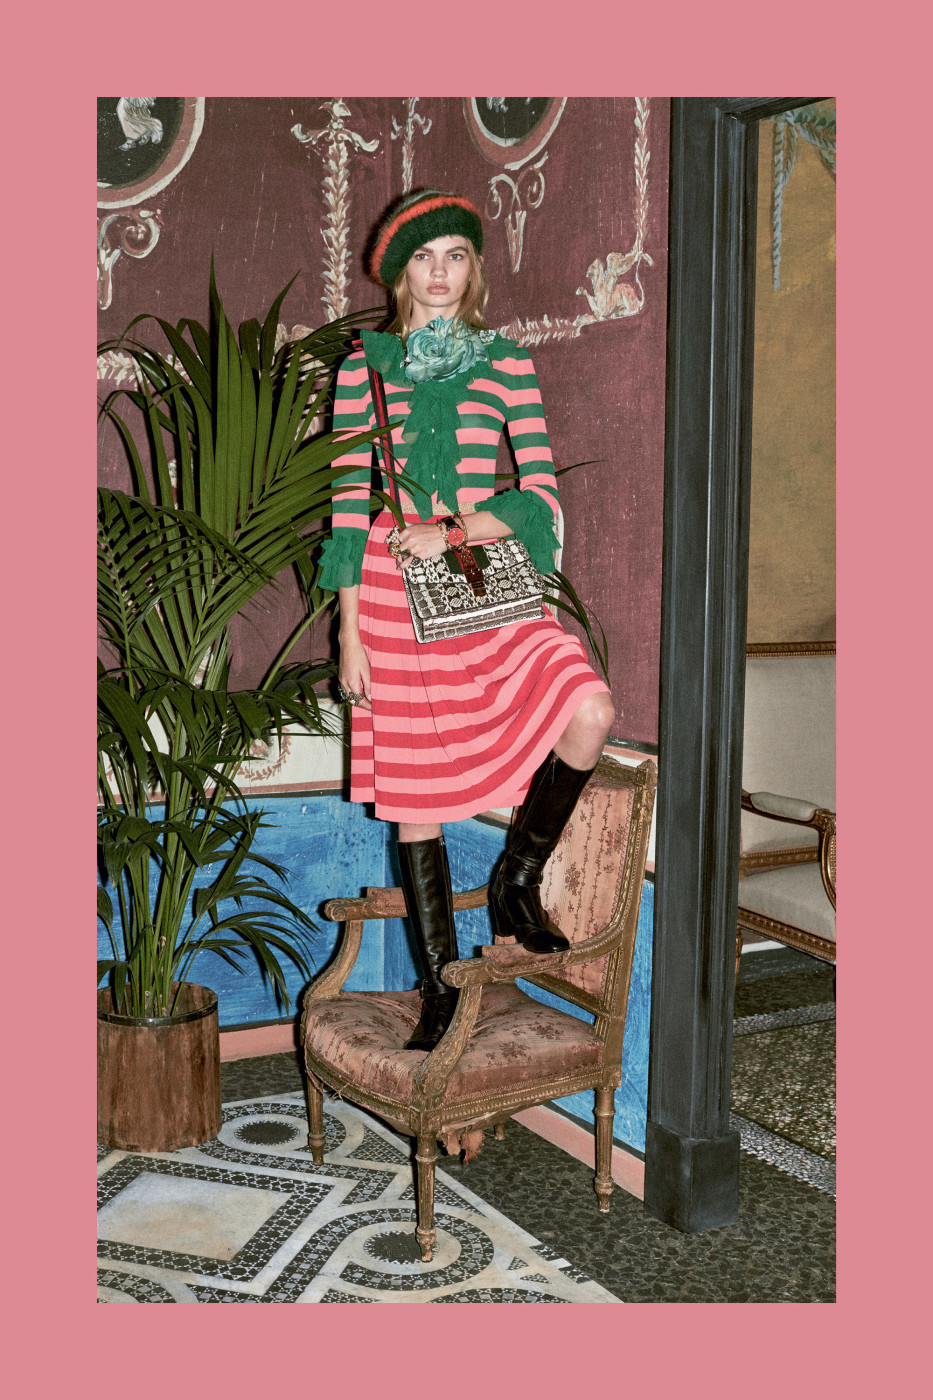 paula-schinschel-gucci-pre-fall-2016-lookbook-50